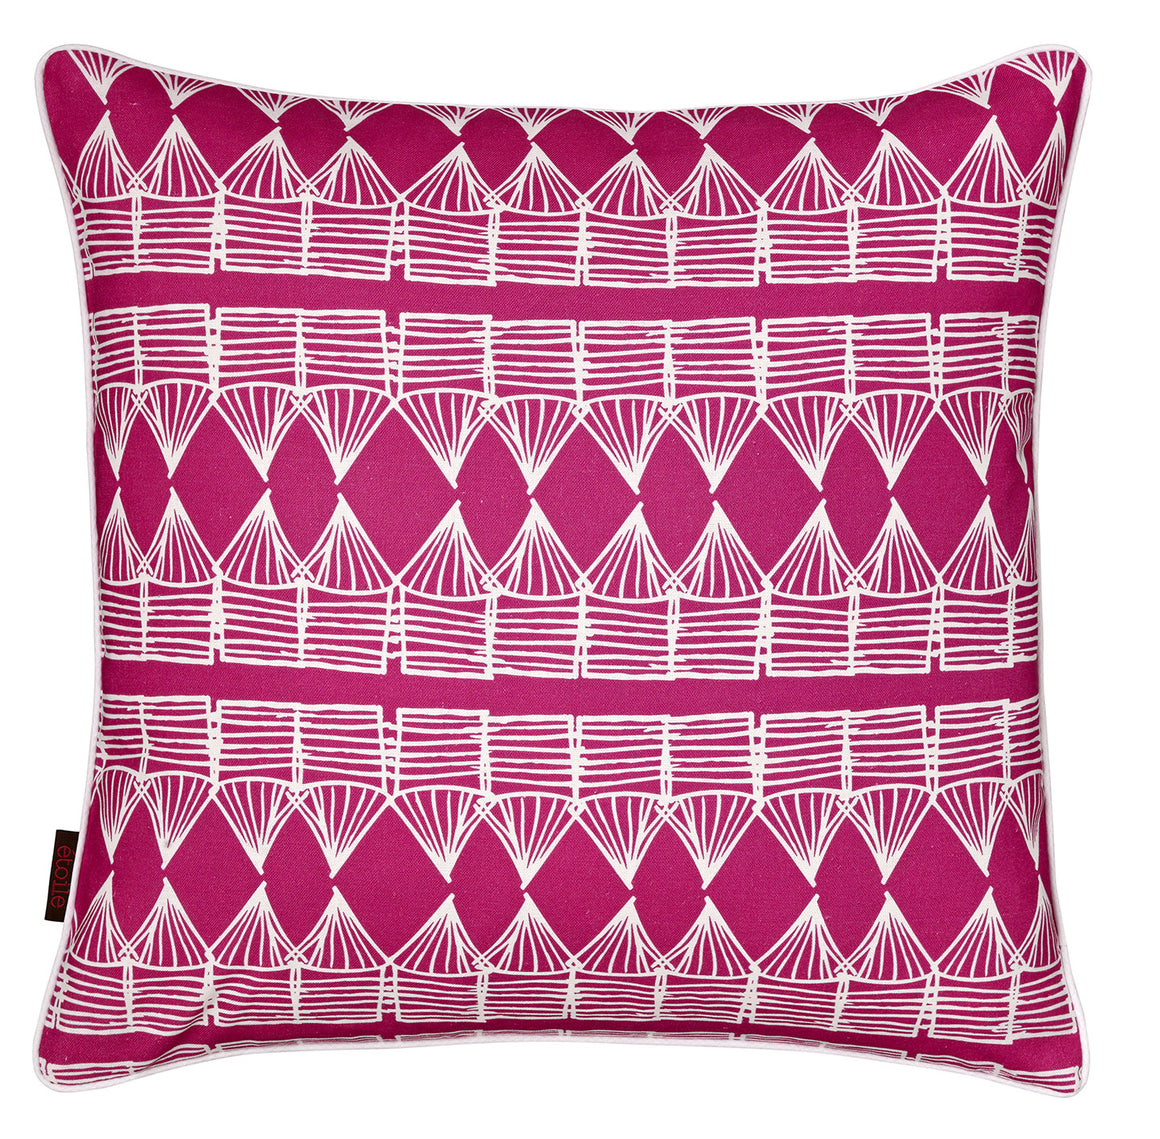 Tiki Huts Pattern Linen Cotton Cushion in Hot Fuchsia Pink 45x45cm